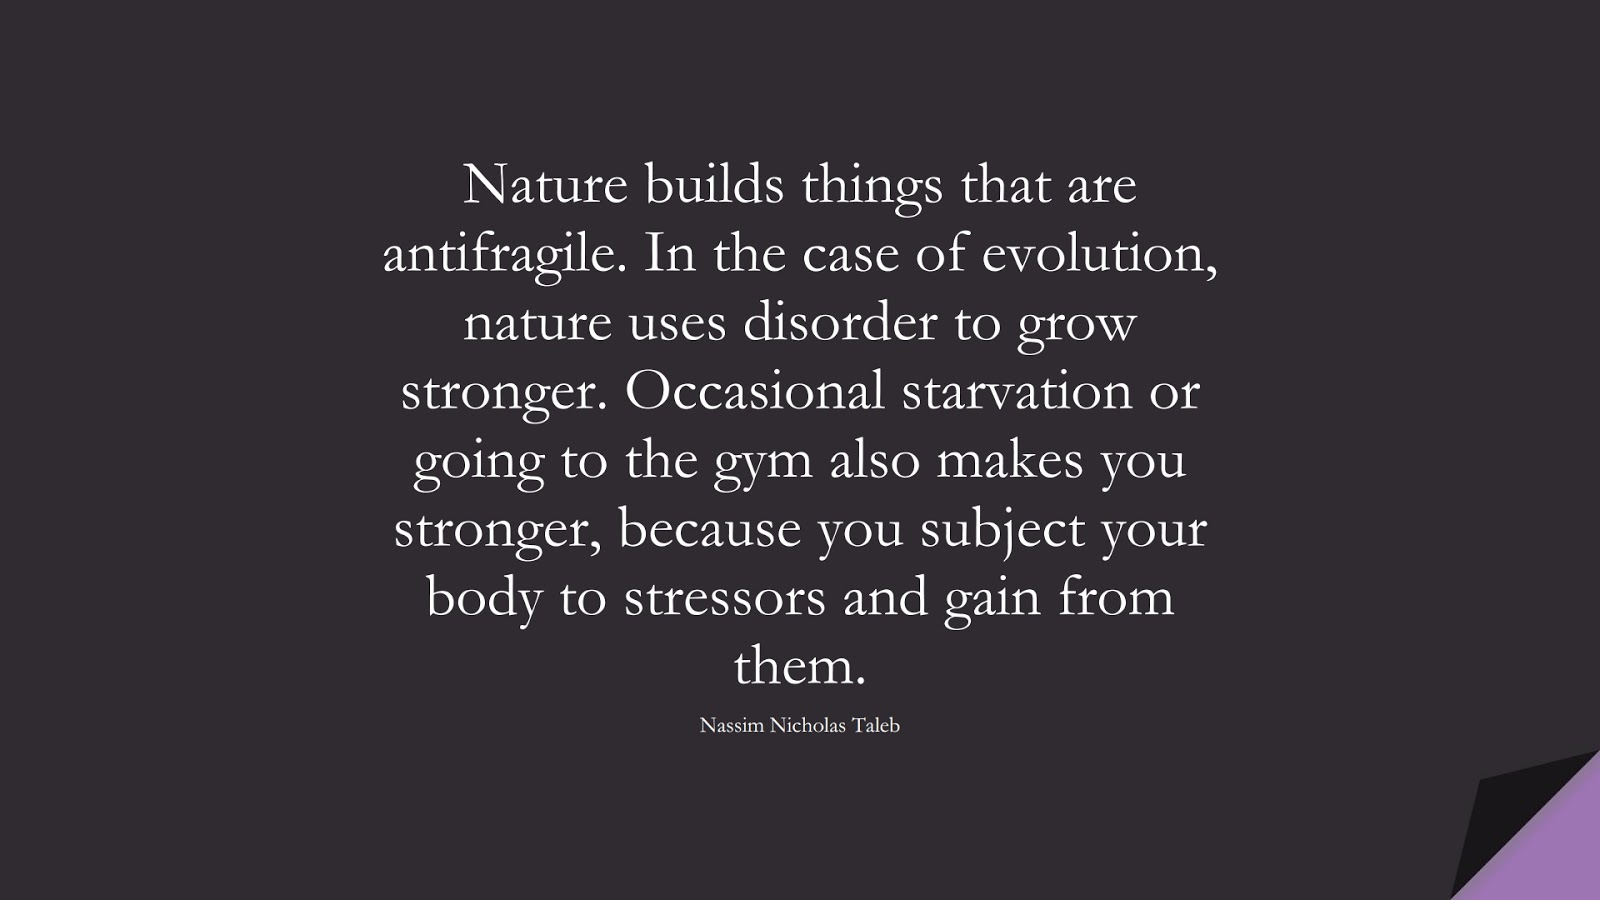 Nature builds things that are antifragile. In the case of evolution, nature uses disorder to grow stronger. Occasional starvation or going to the gym also makes you stronger, because you subject your body to stressors and gain from them. (Nassim Nicholas Taleb);  #BeingStrongQuotes